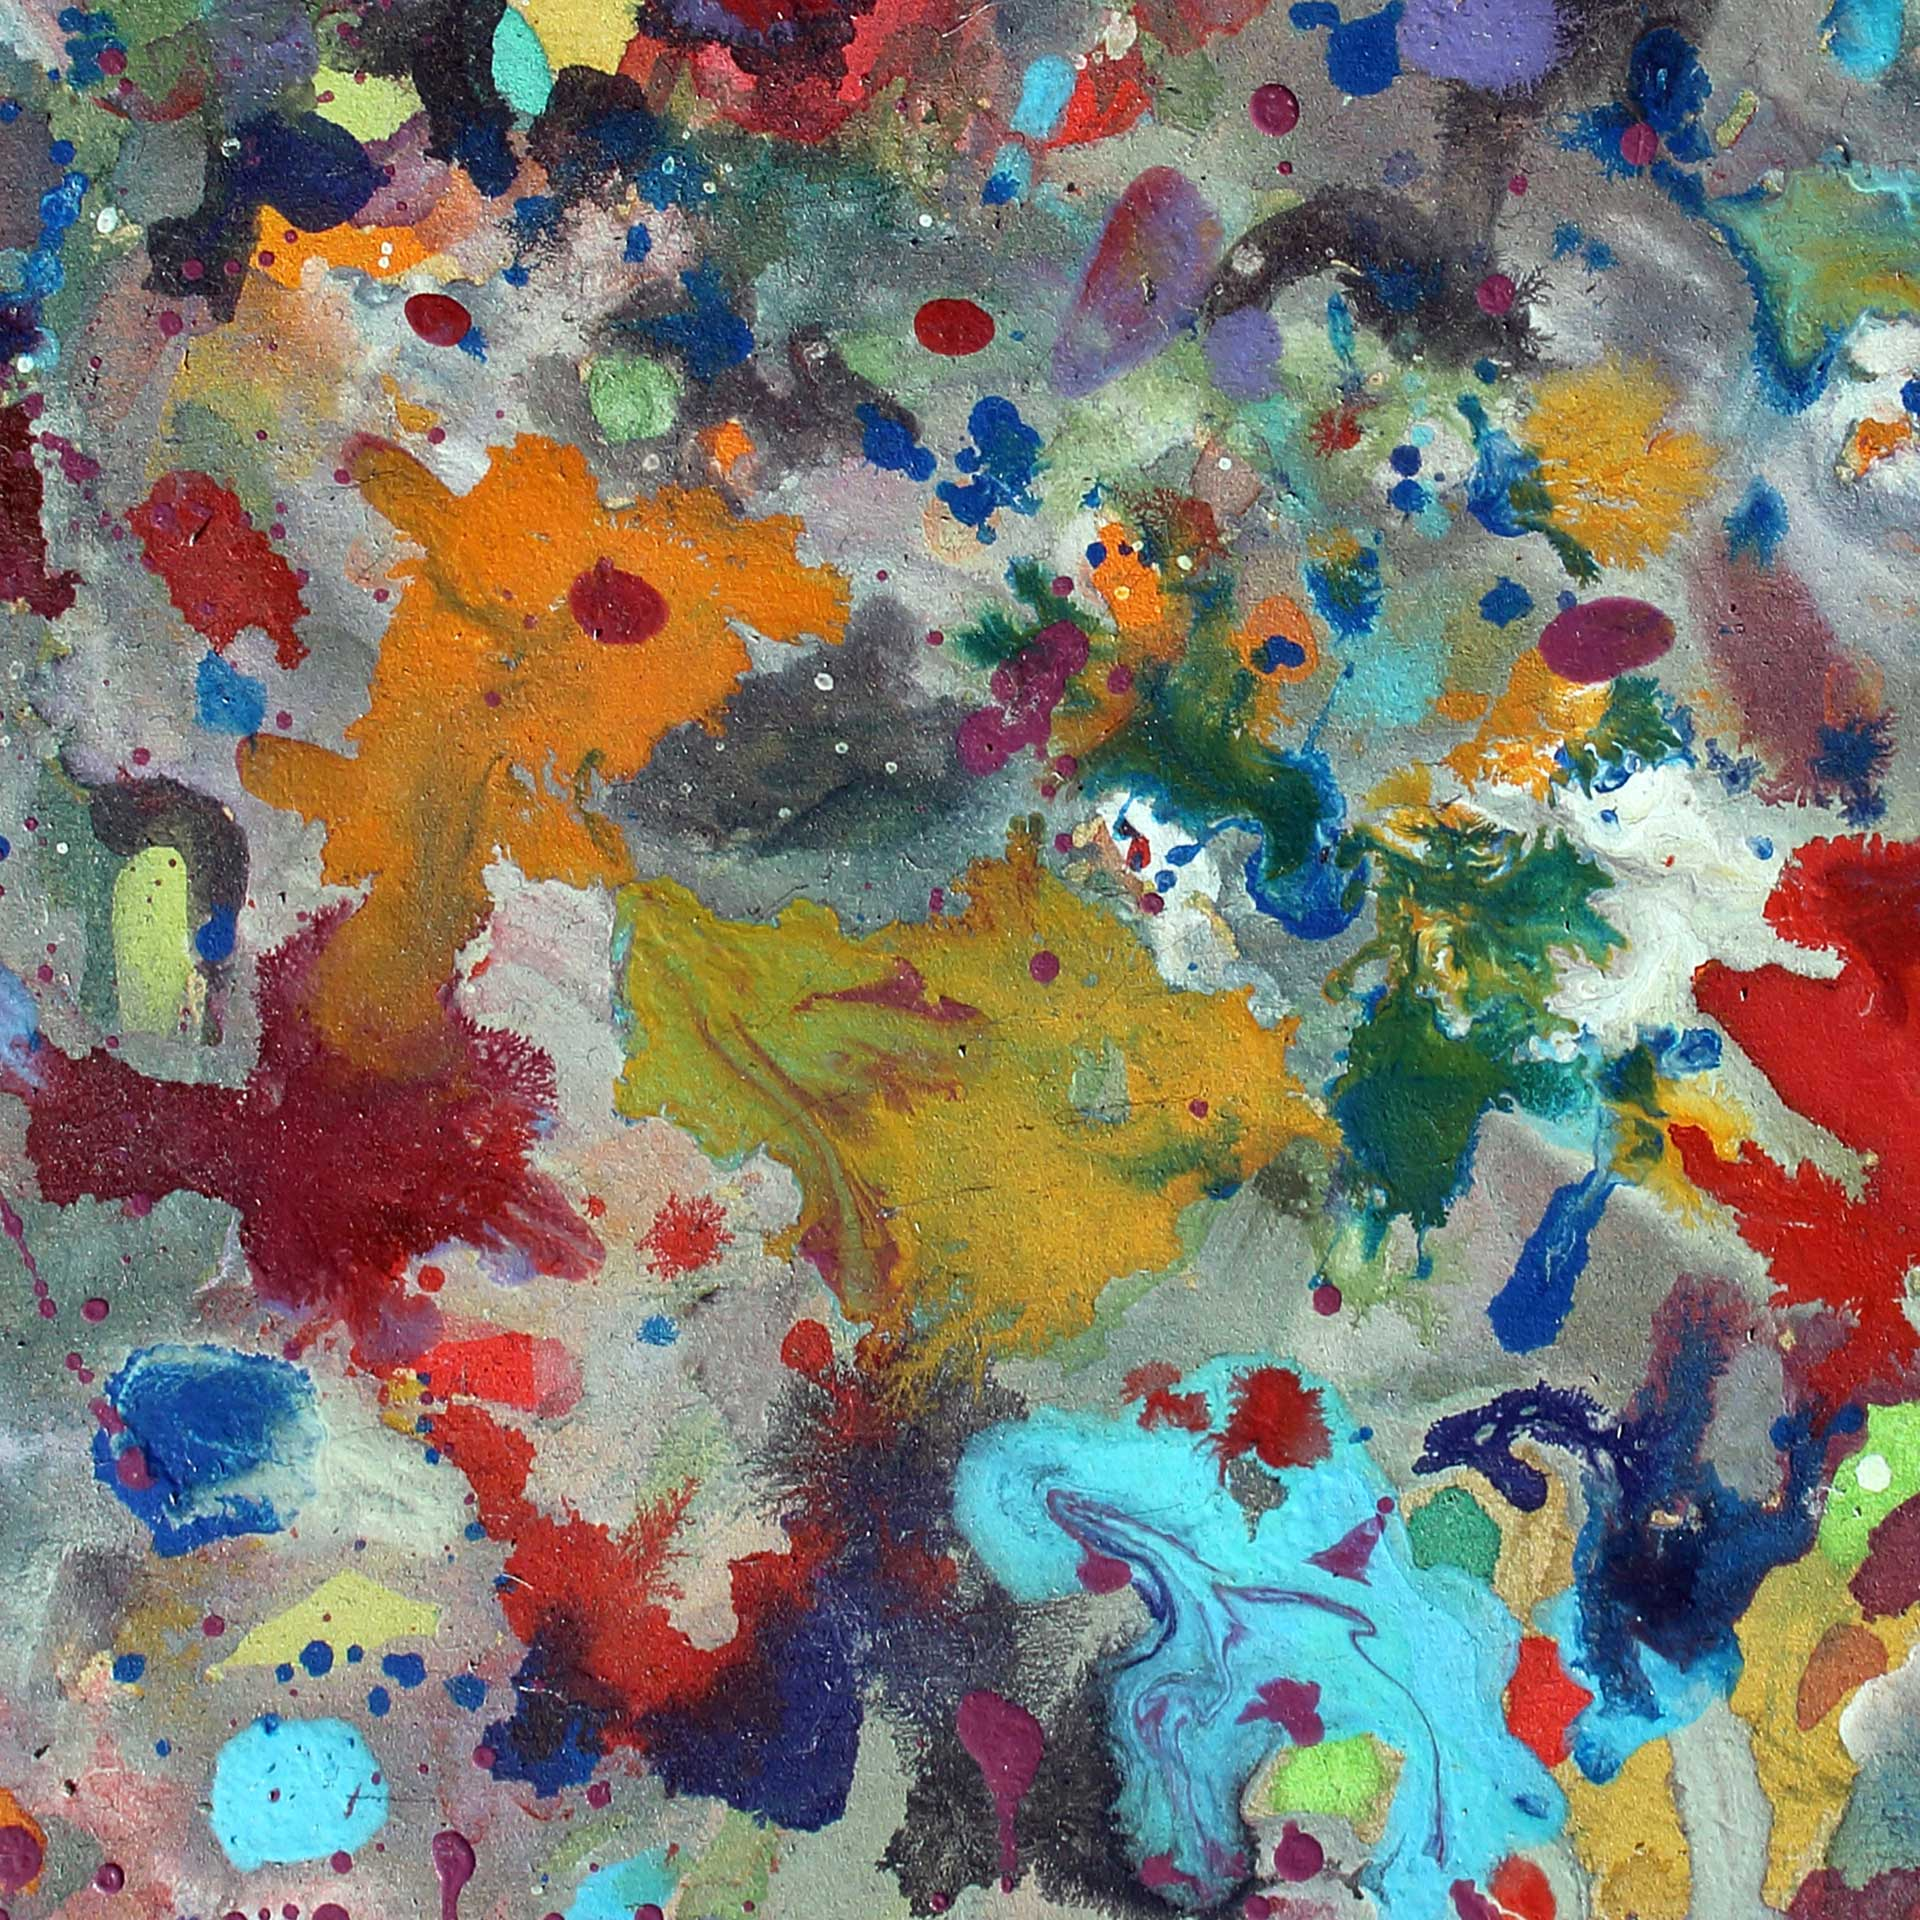 Abstract expressionism painting - Crowd of spectators at a football match - Detail 1